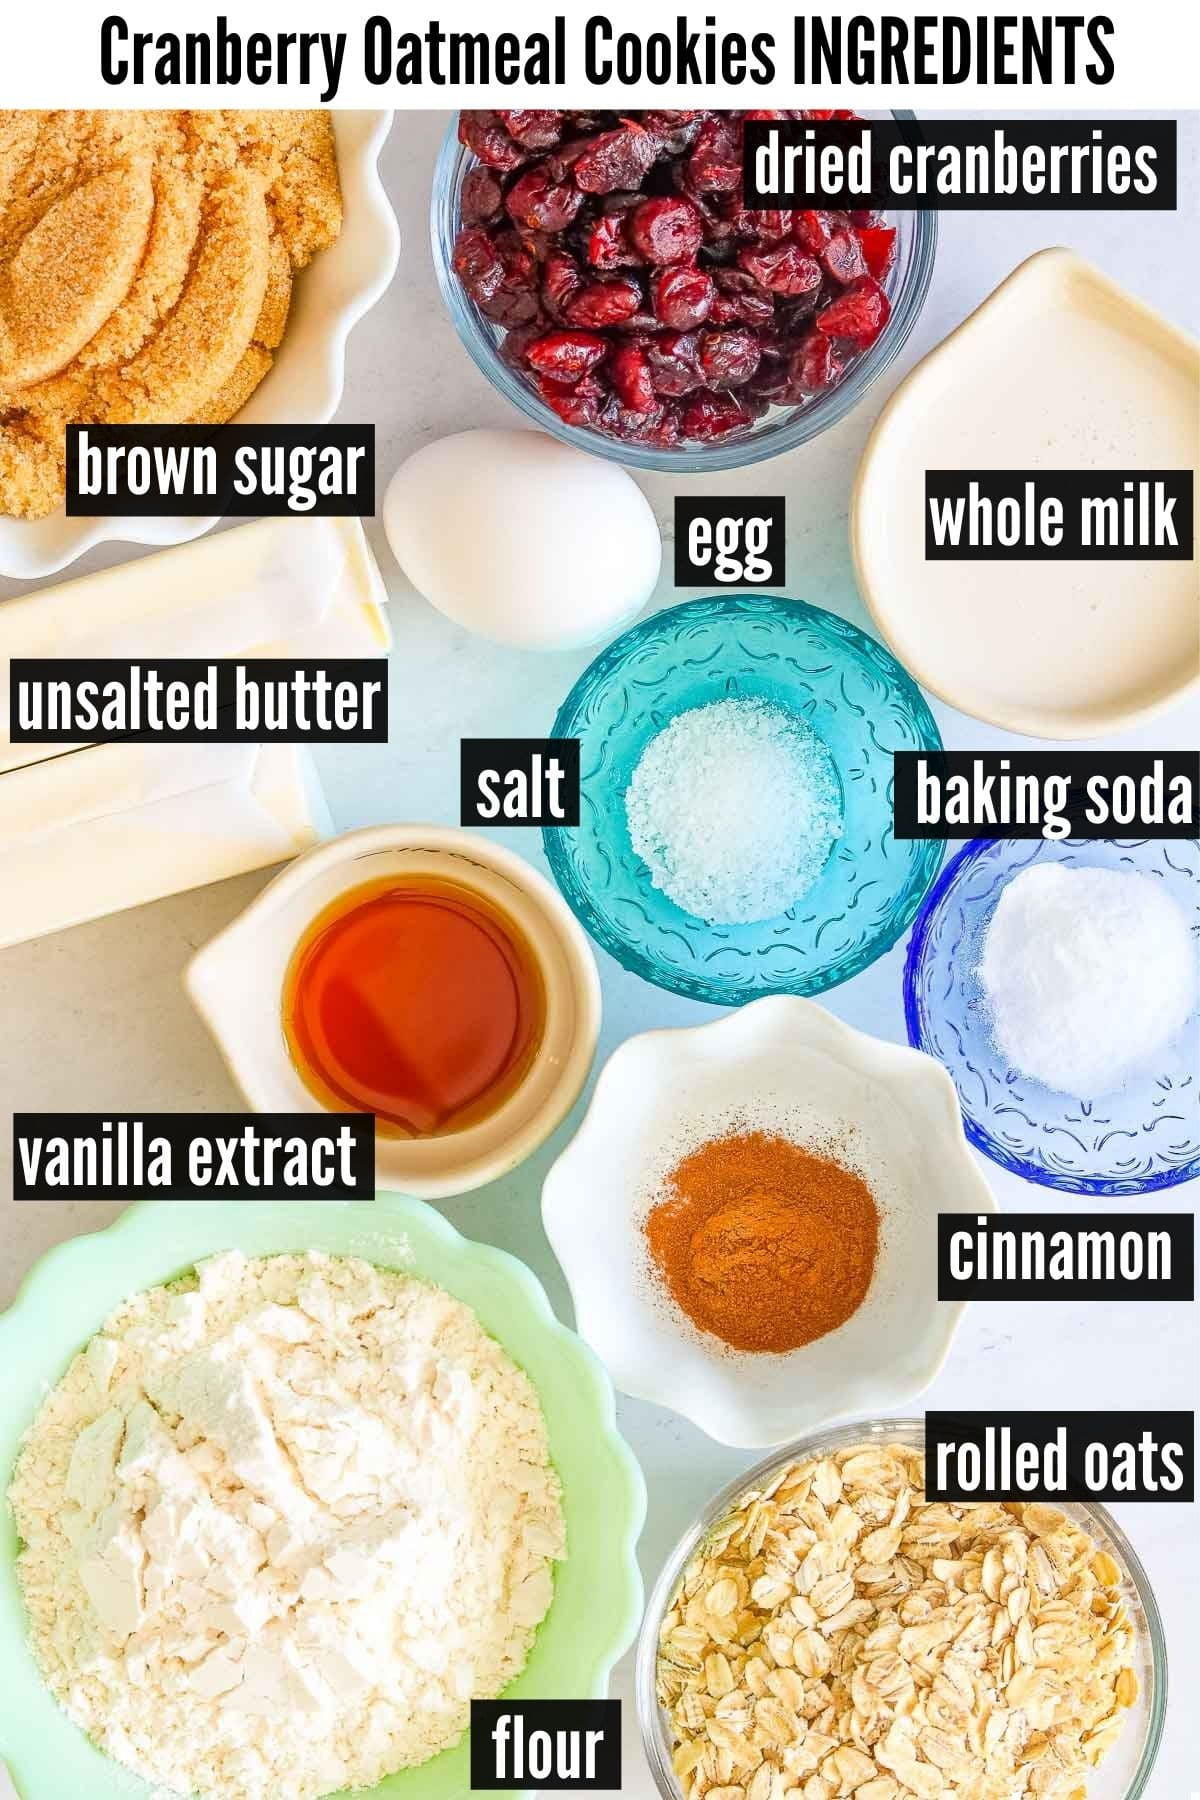 cranberry oatmeal cookies ingredients